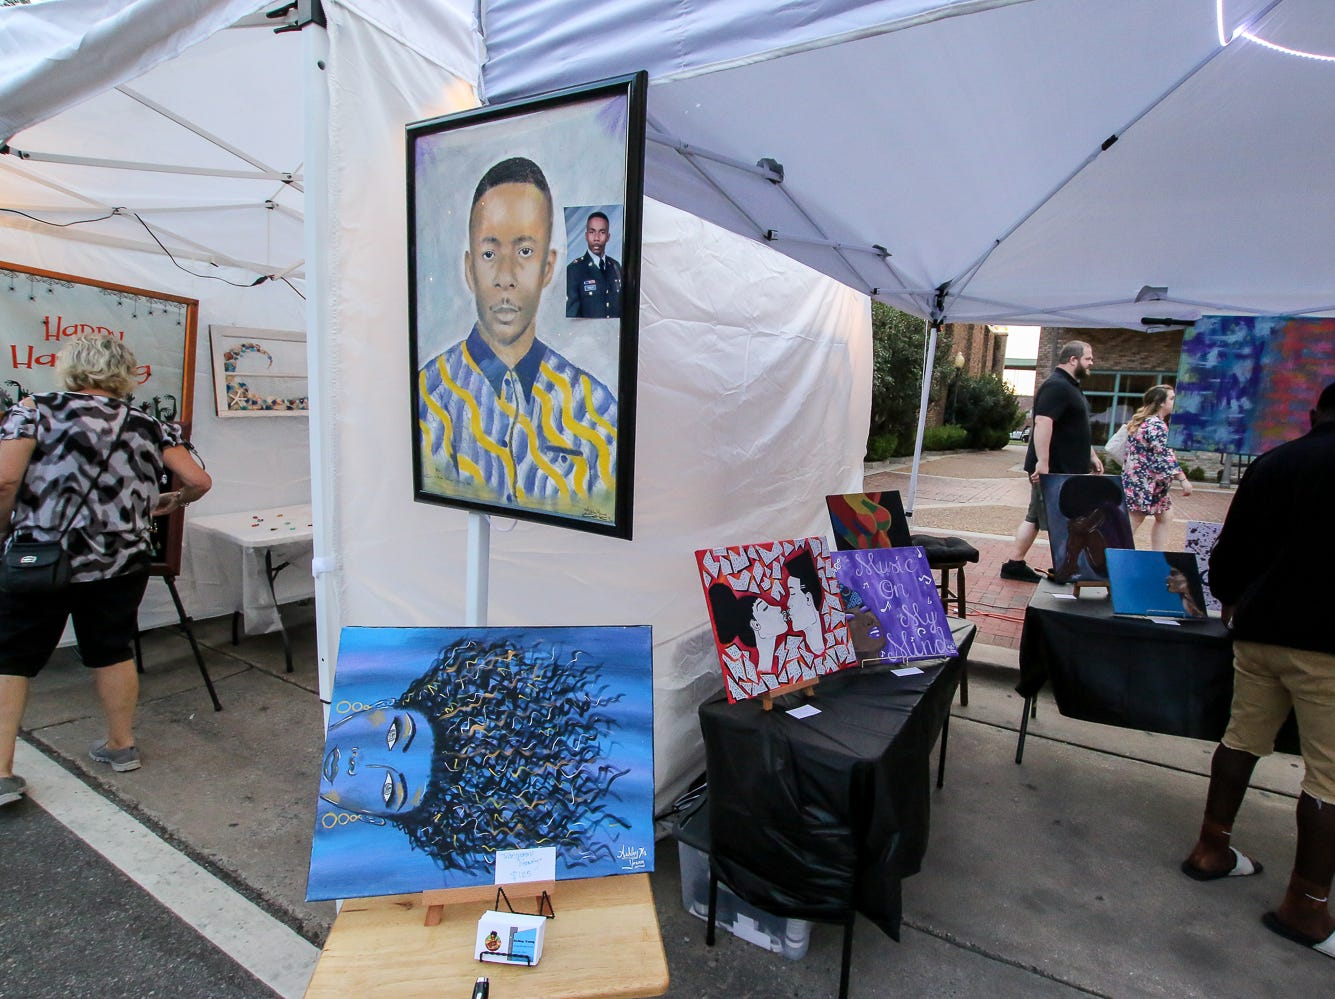 Scenes from Gallery Night on Friday, Sept. 21, 2018.